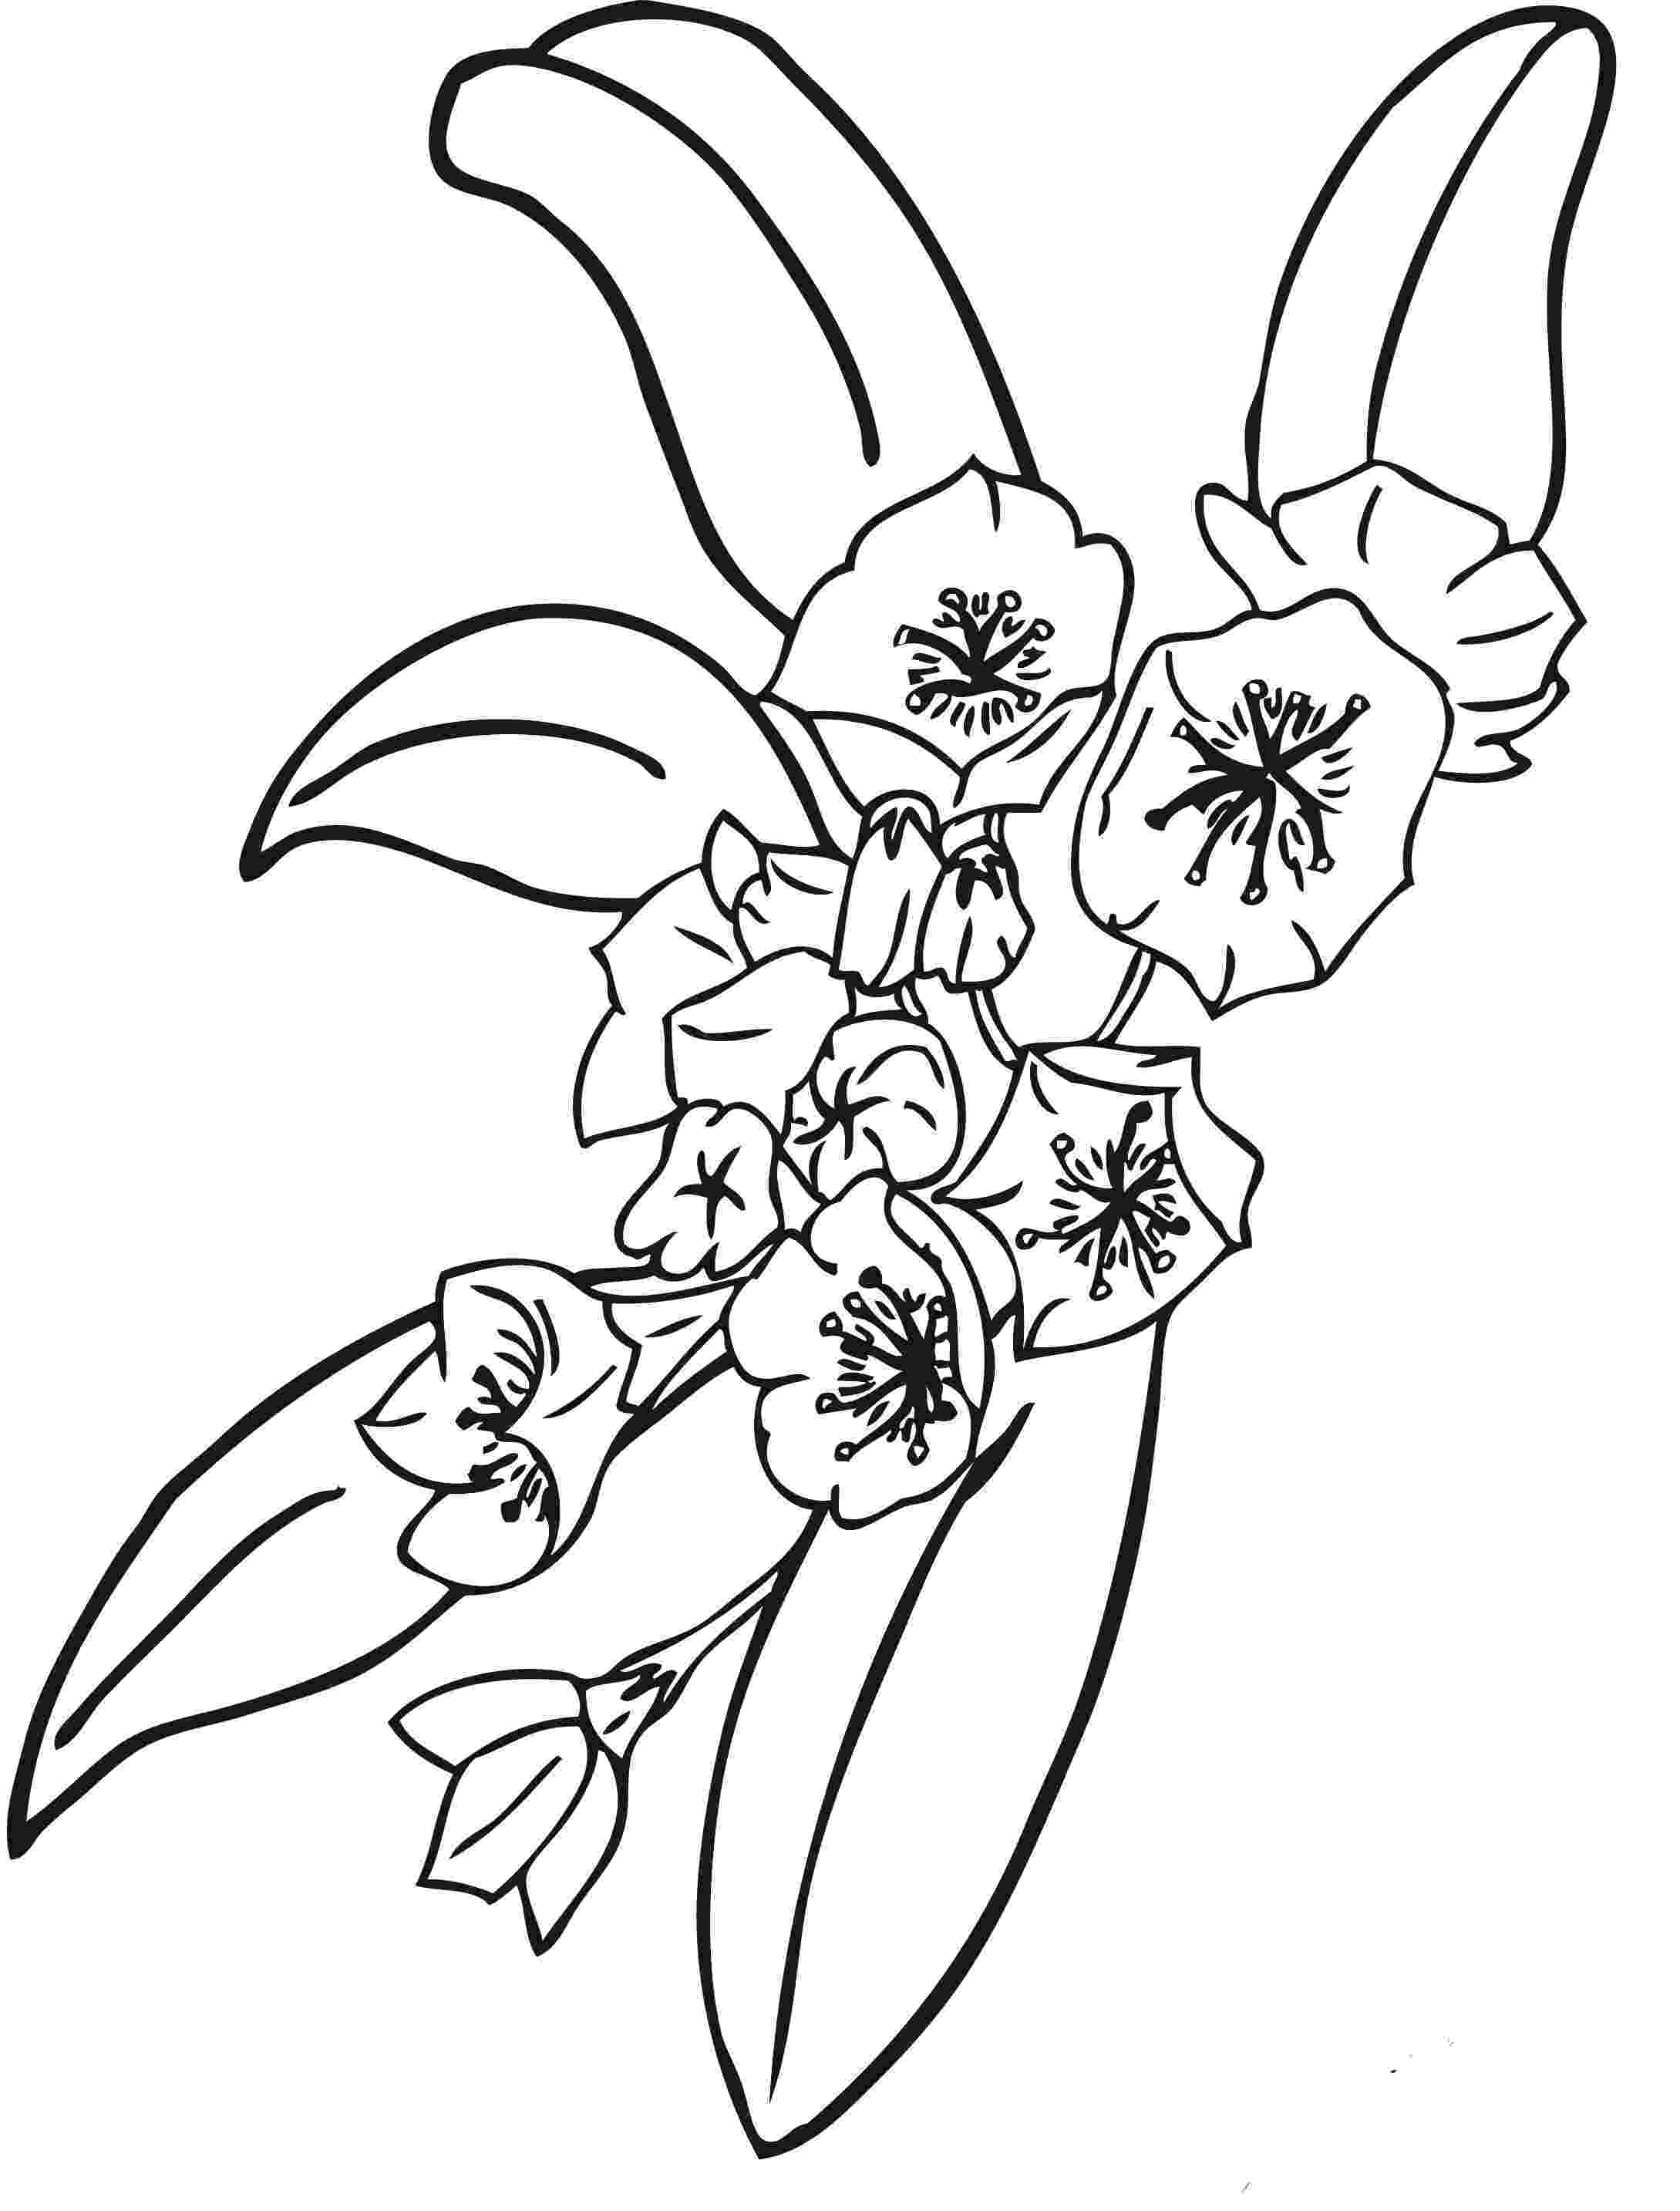 picture of flower for colouring flower garden coloring pages to download and print for free for colouring picture flower of